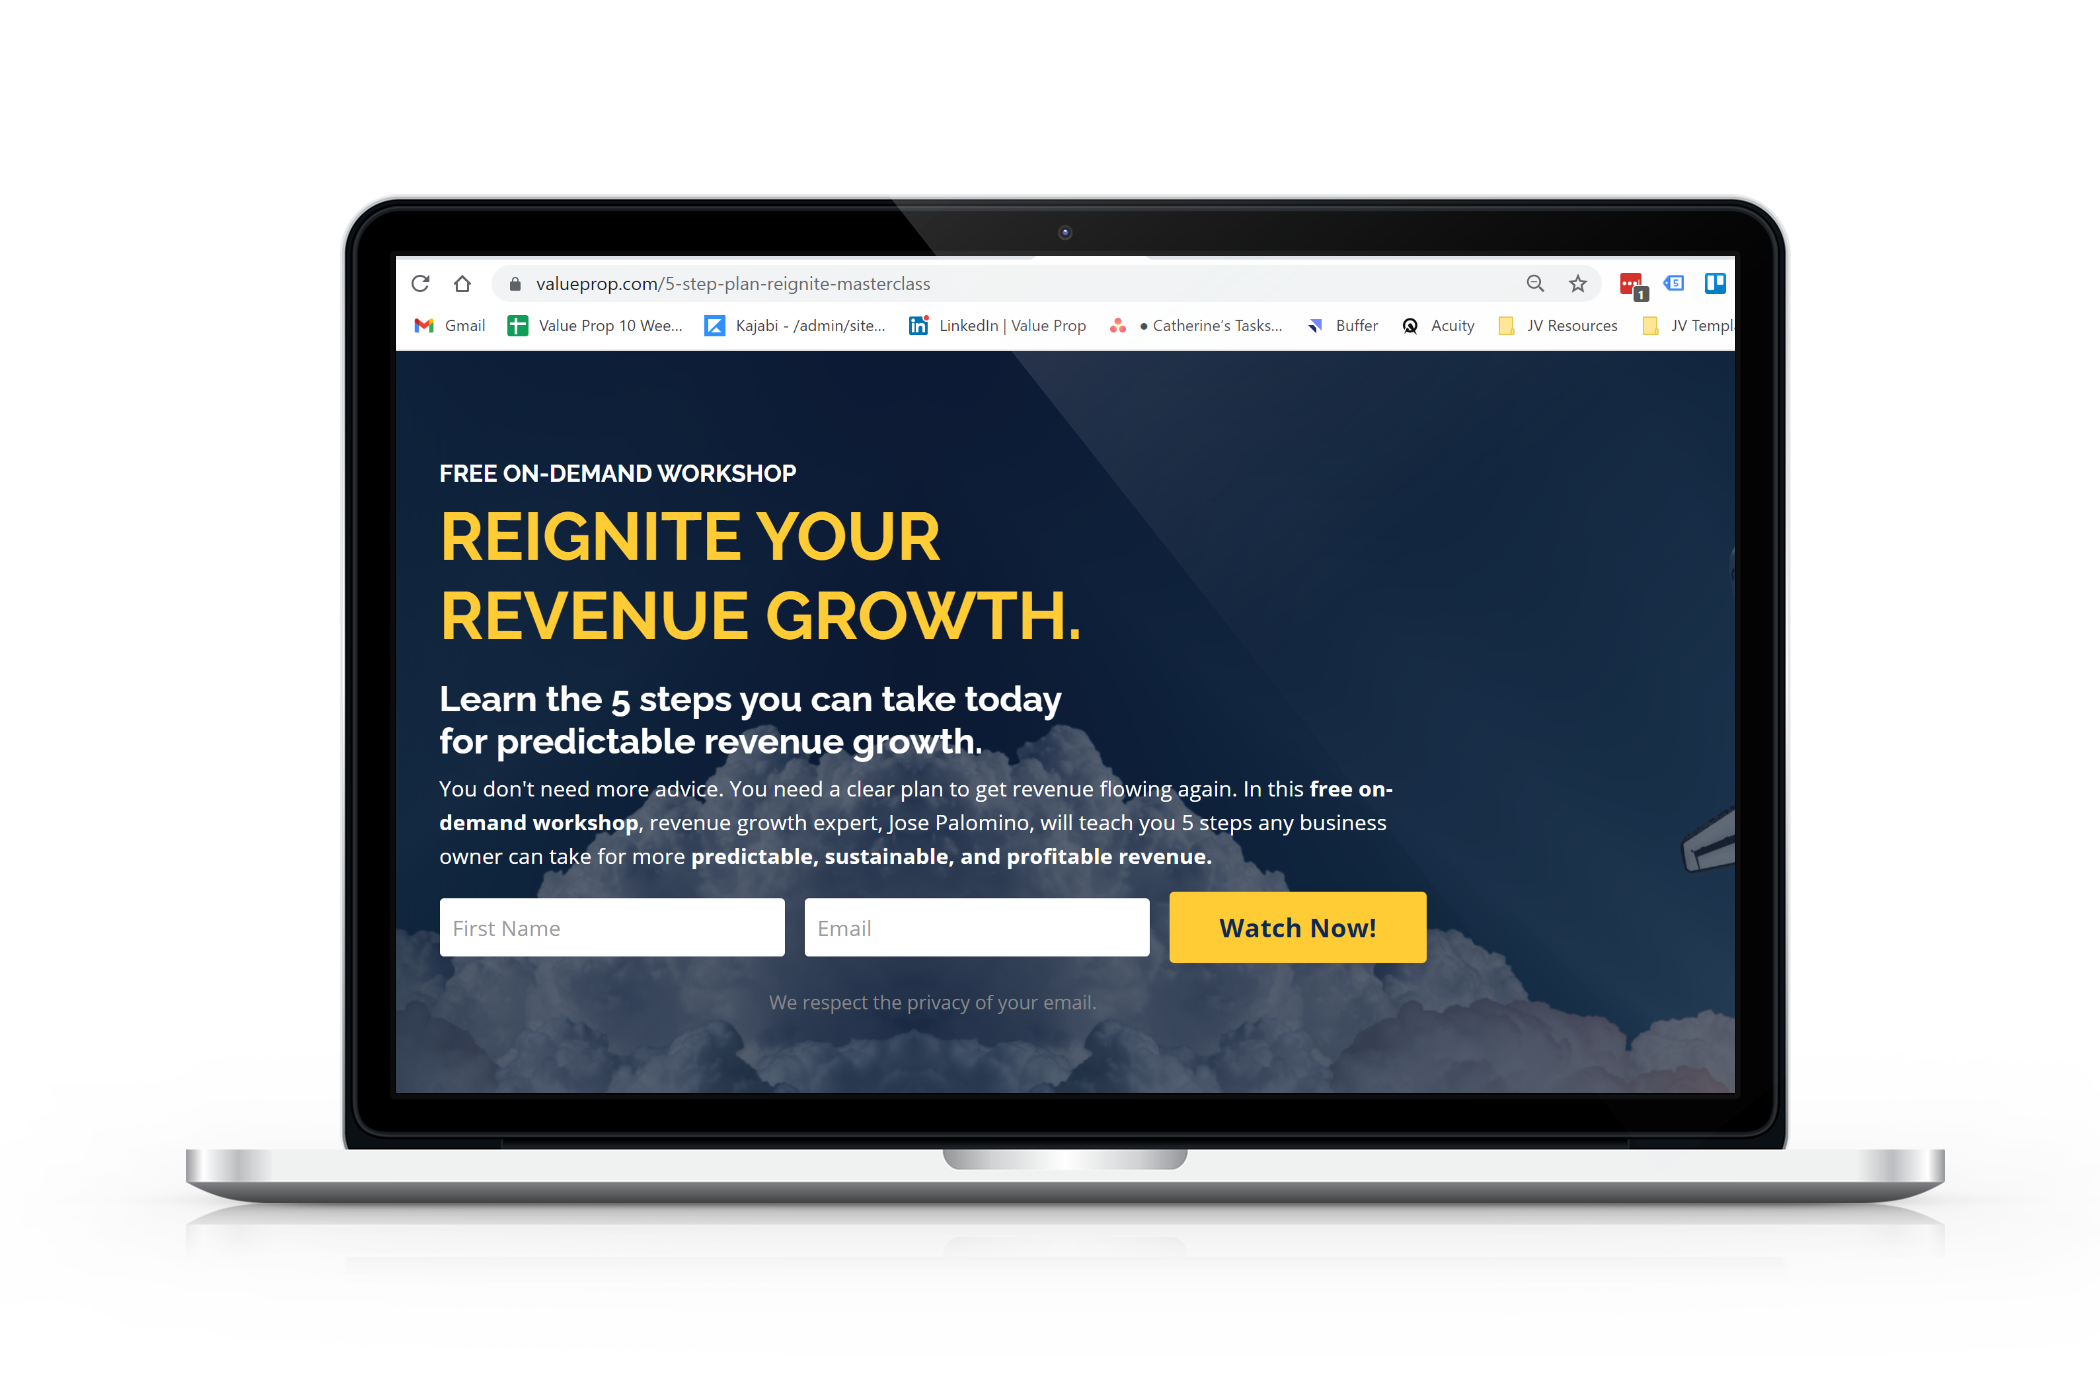 The 5 Step Action Plan That Will Reignite Your Revenue